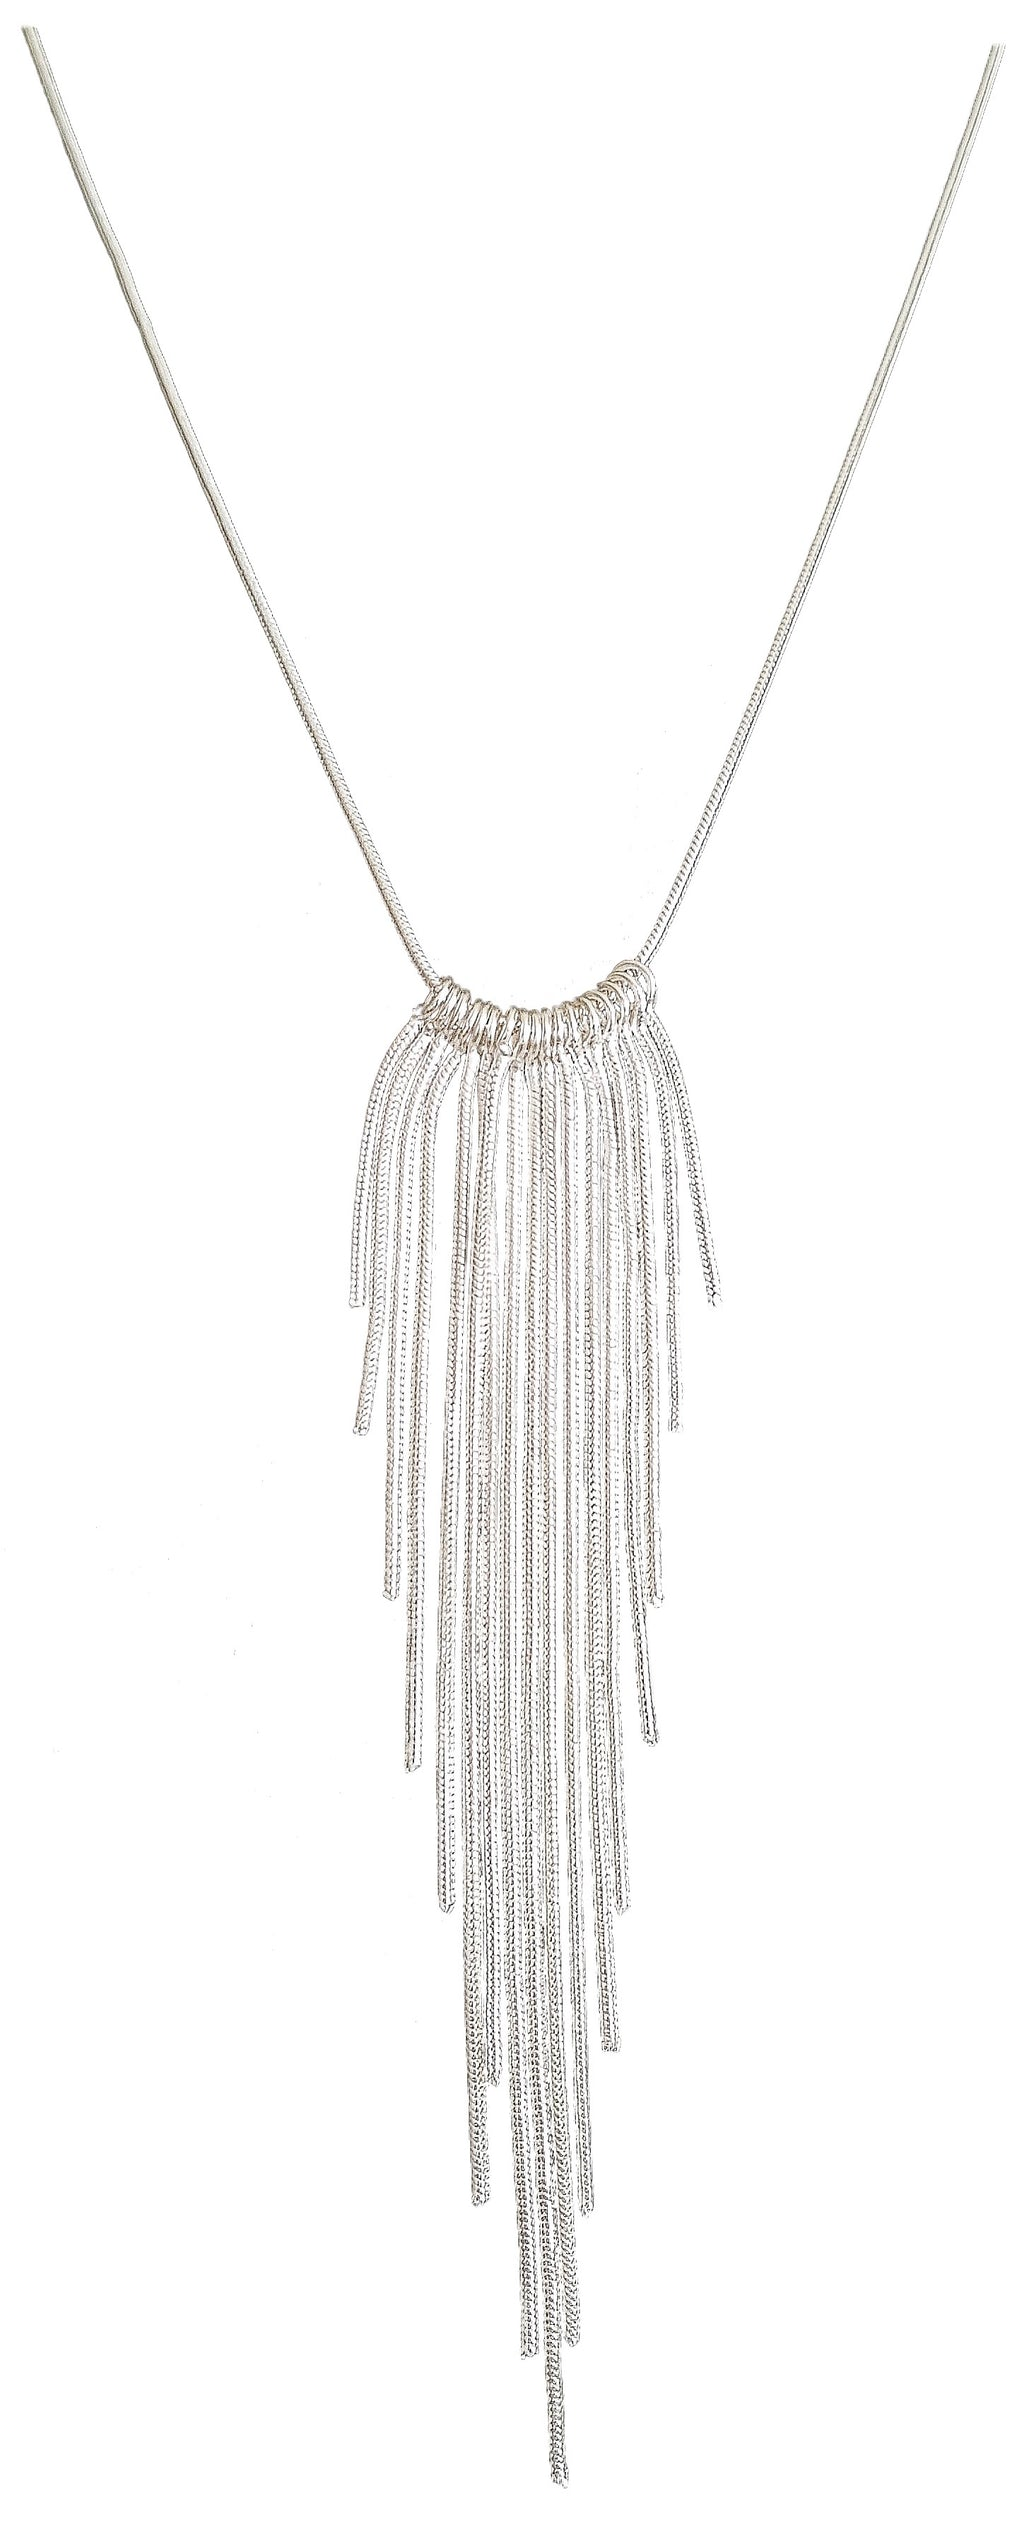 Waterfall Necklace - Vlure